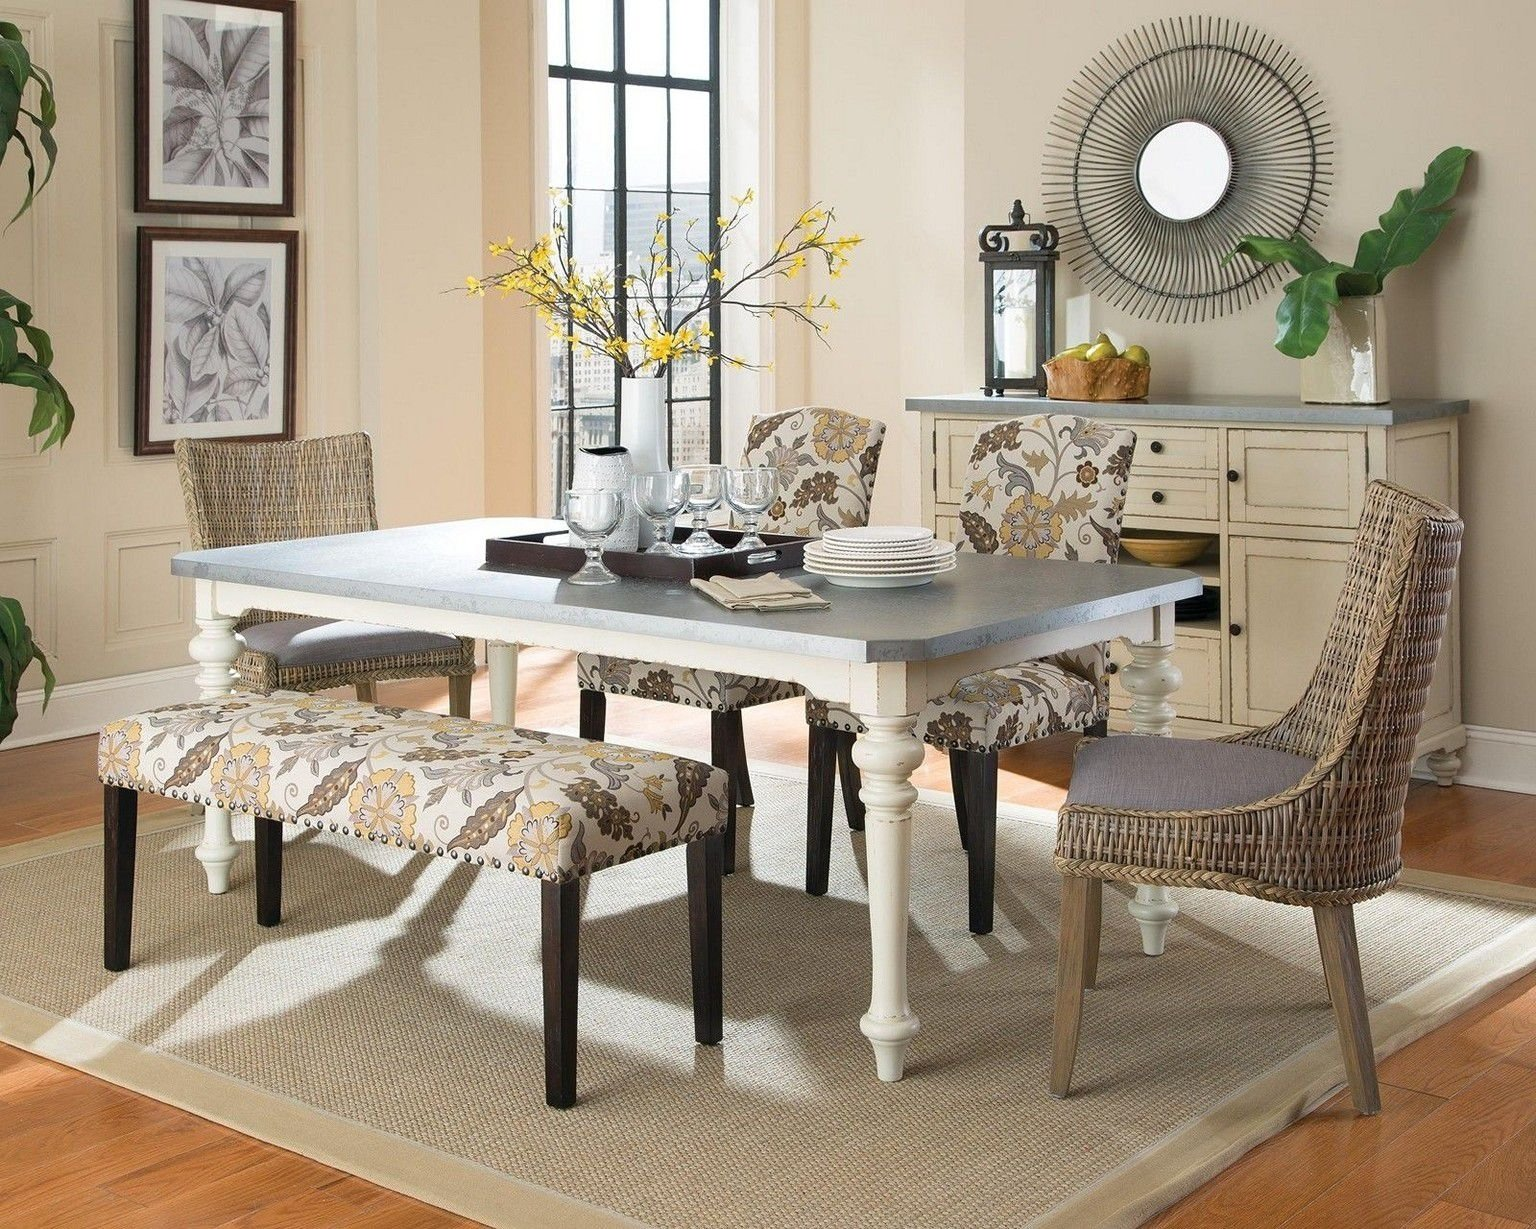 10 Fashionable Dining Room Decor Ideas Pictures stunning dining room decorating ideas for modern living midcityeast